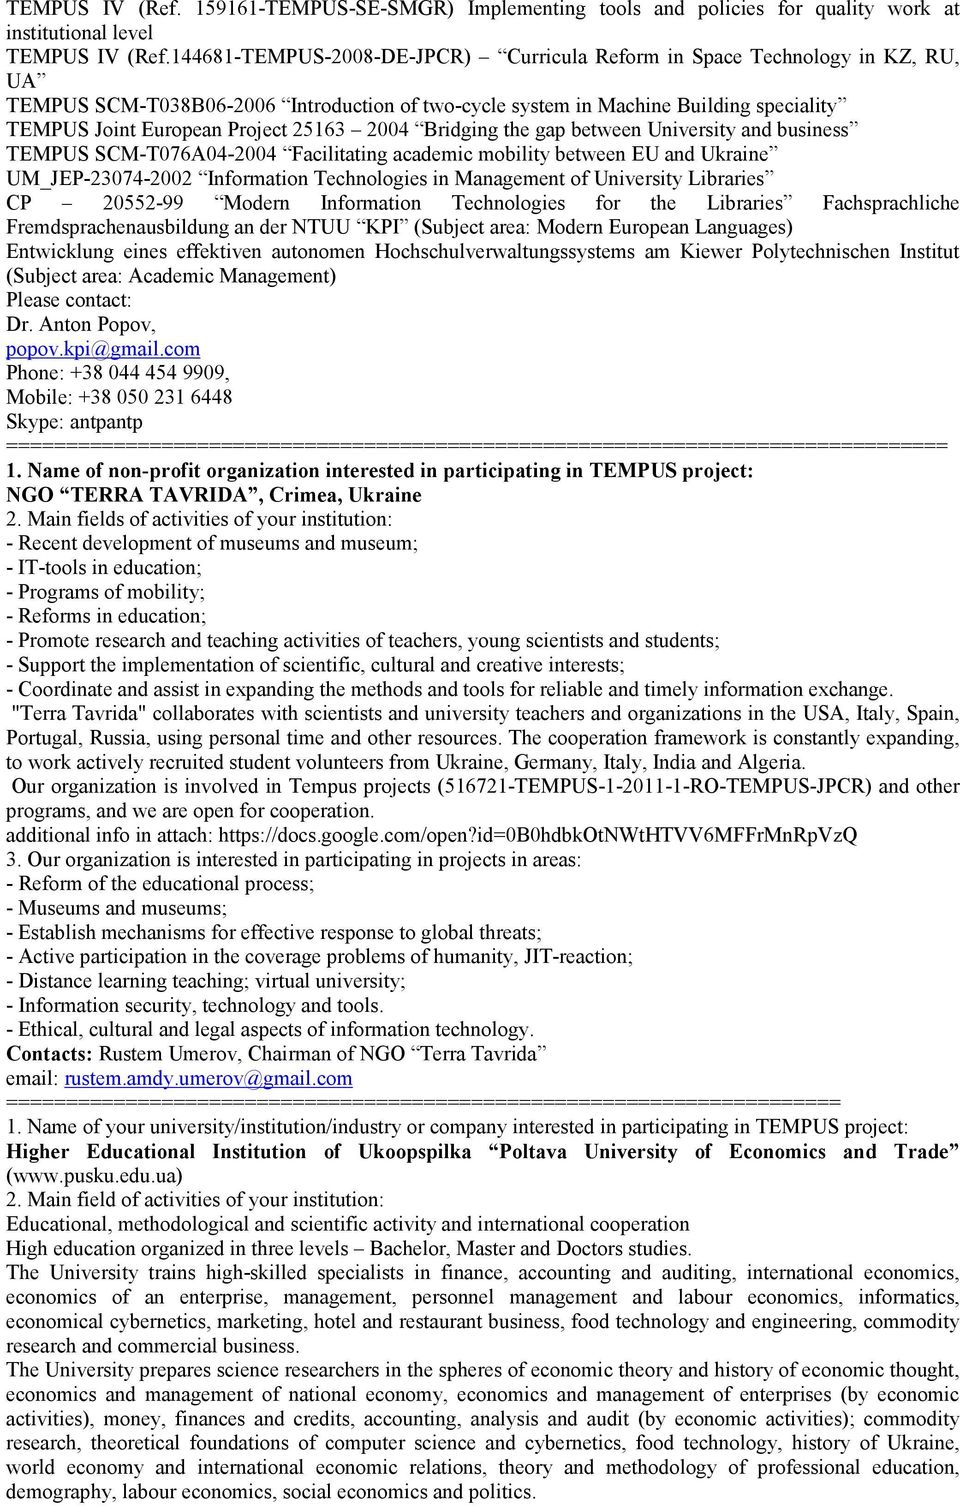 25163 2004 Bridging the gap between University and business TEMPUS SCM-T076A04-2004 Facilitating academic mobility between EU and Ukraine UM_JEP-23074-2002 Information Technologies in Management of